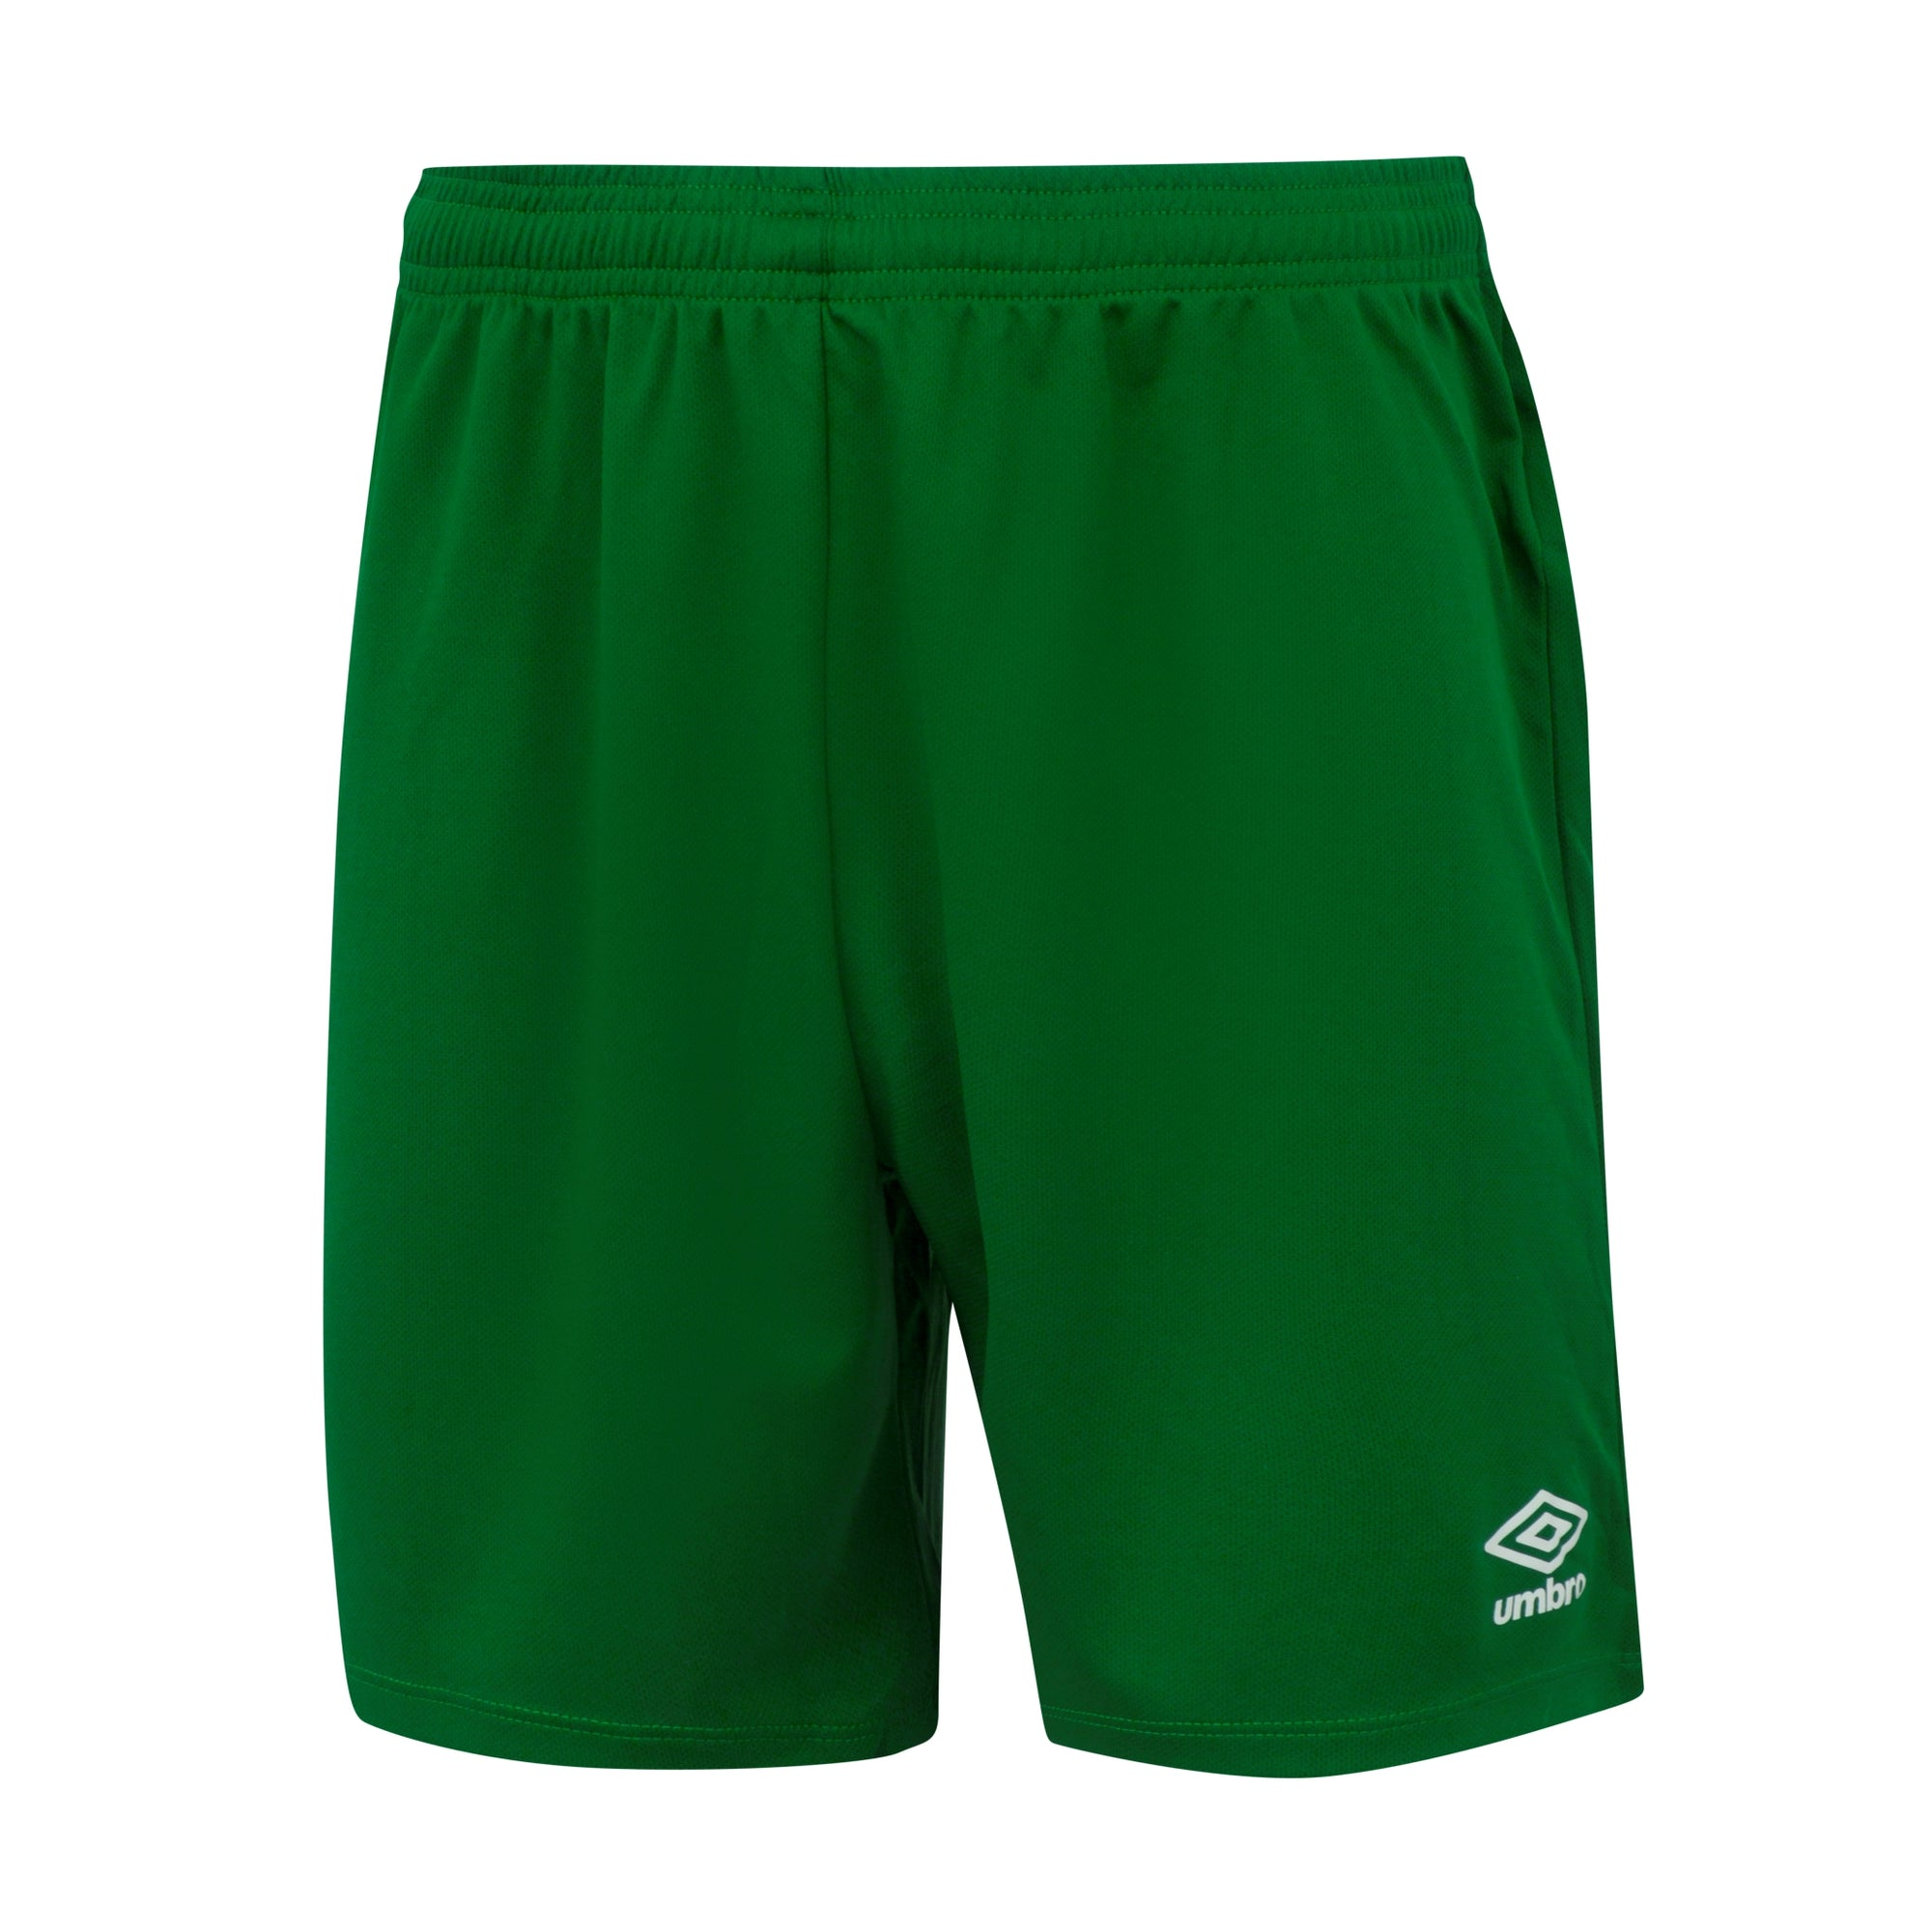 Umbro Club Short II - Green